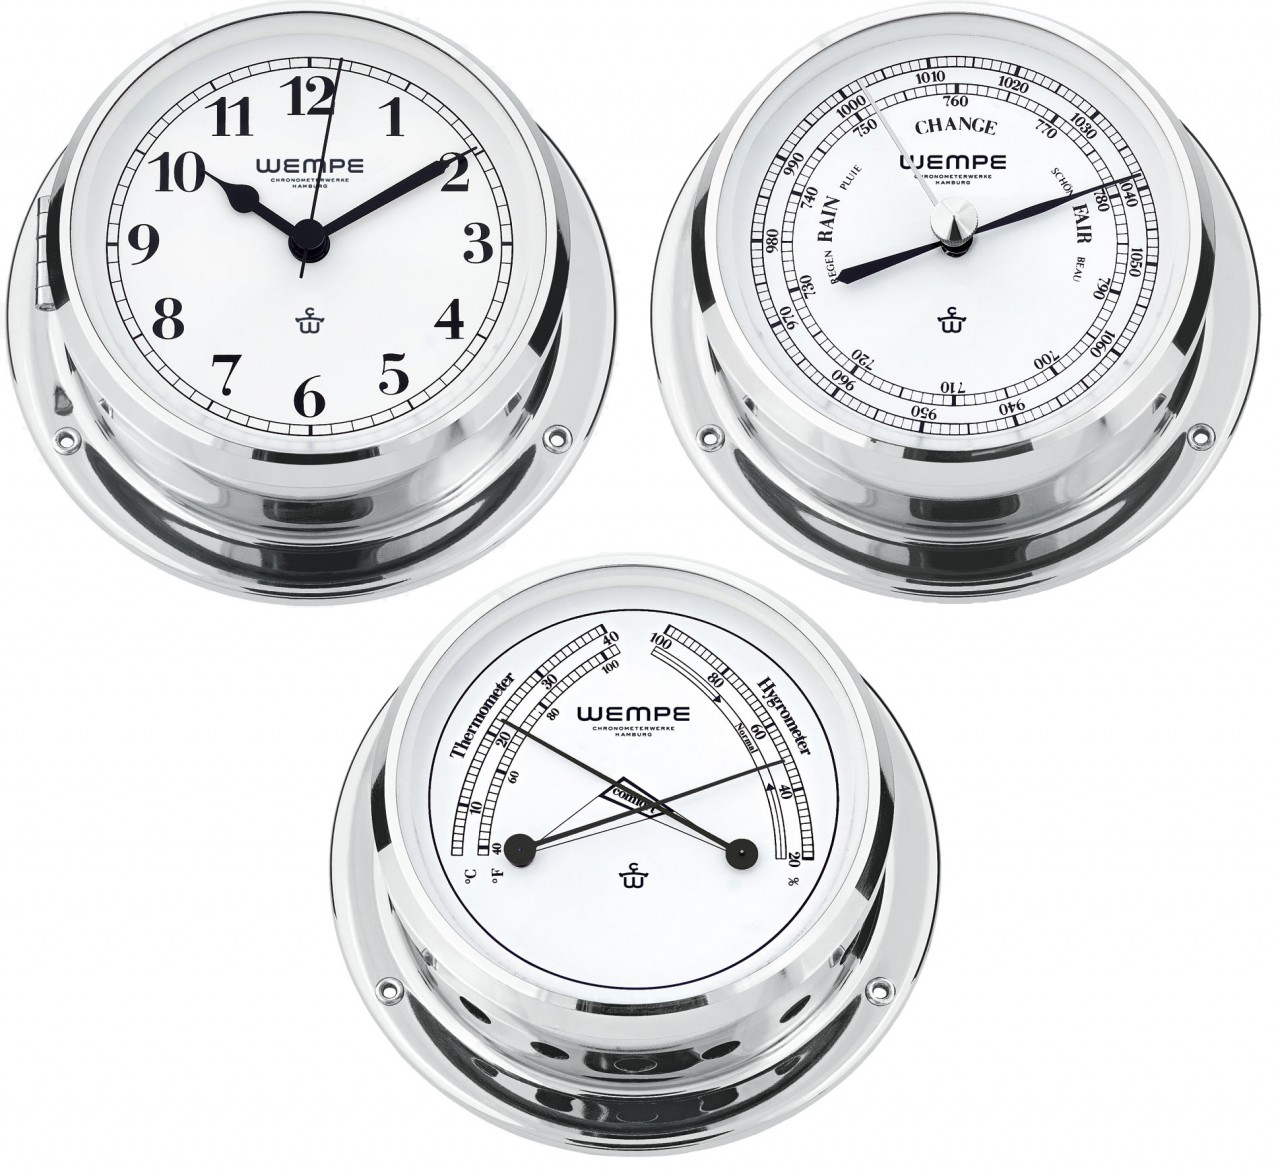 wempe serie skiff chrom 110mm yachtuhr arab ziff barometer comfortmeter ebay. Black Bedroom Furniture Sets. Home Design Ideas